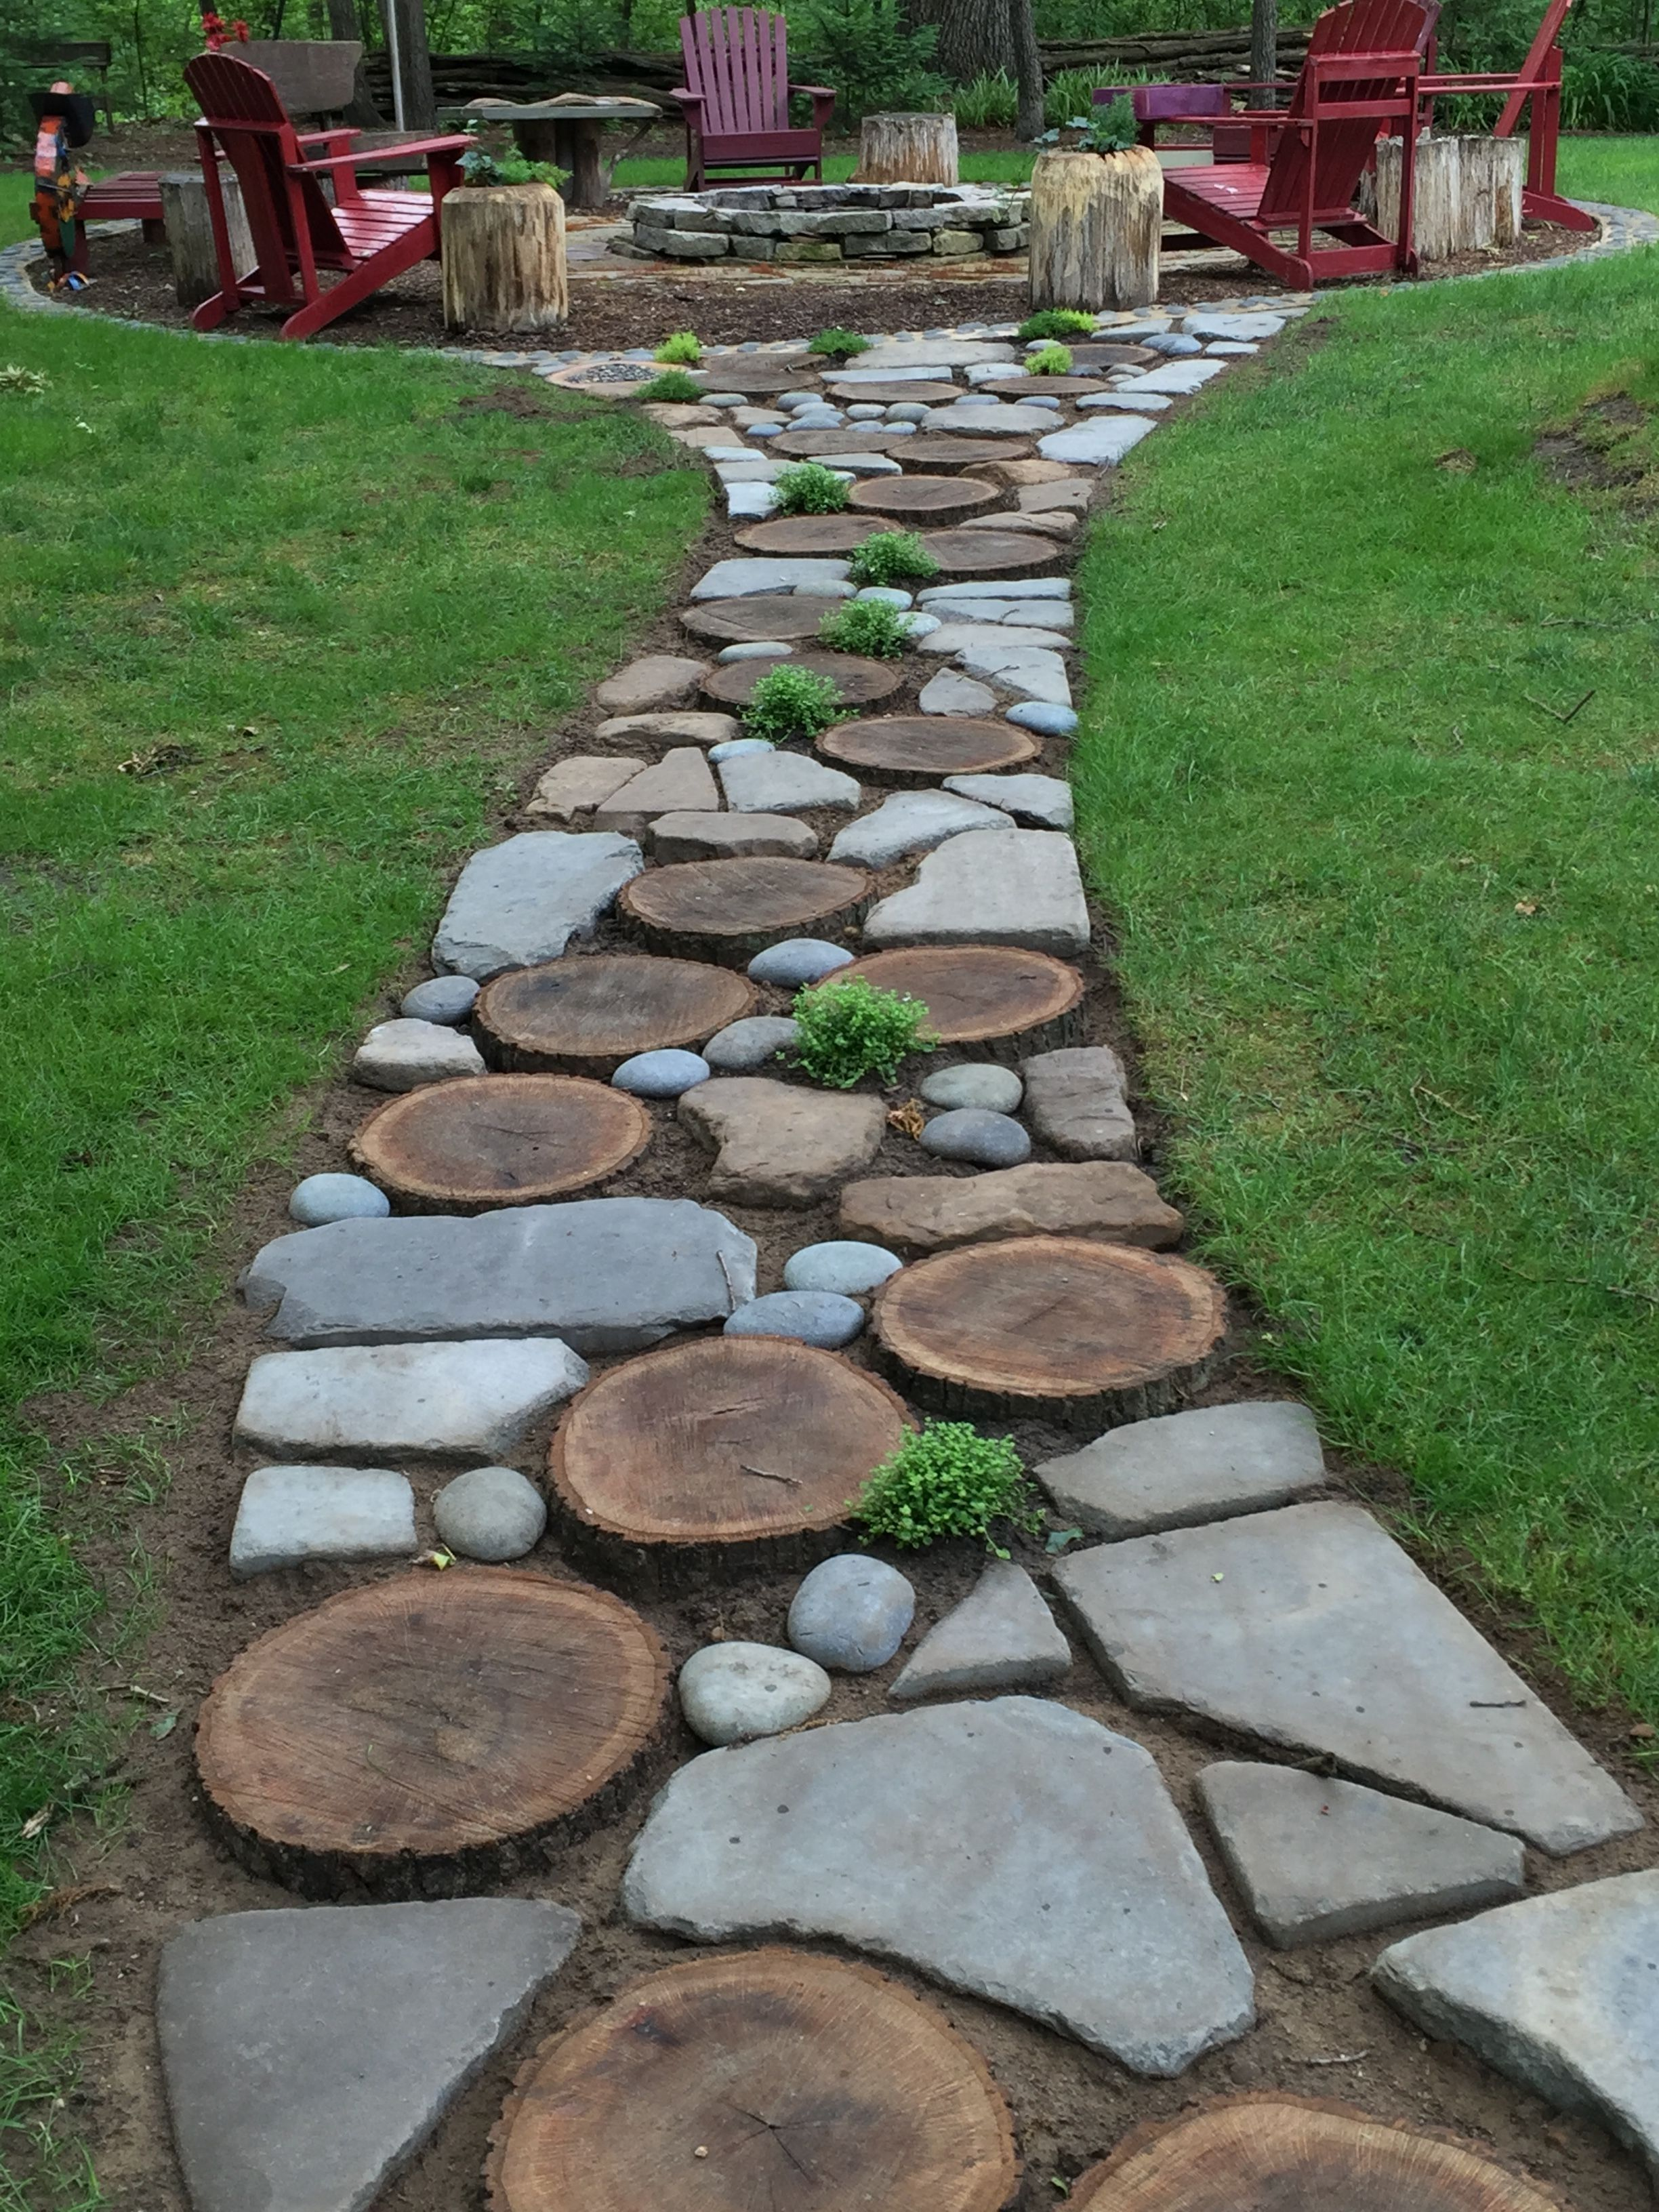 49 Adorable Rock Garden Ideas For Backyard is part of Garden walkway, Garden paths, Rock garden landscaping, Walkway design, Walkway landscaping, Backyard landscaping - Rock gardens are characterized by ultimate beauty and sense of pleasure and sophistication  They are the most amazing thing to […]